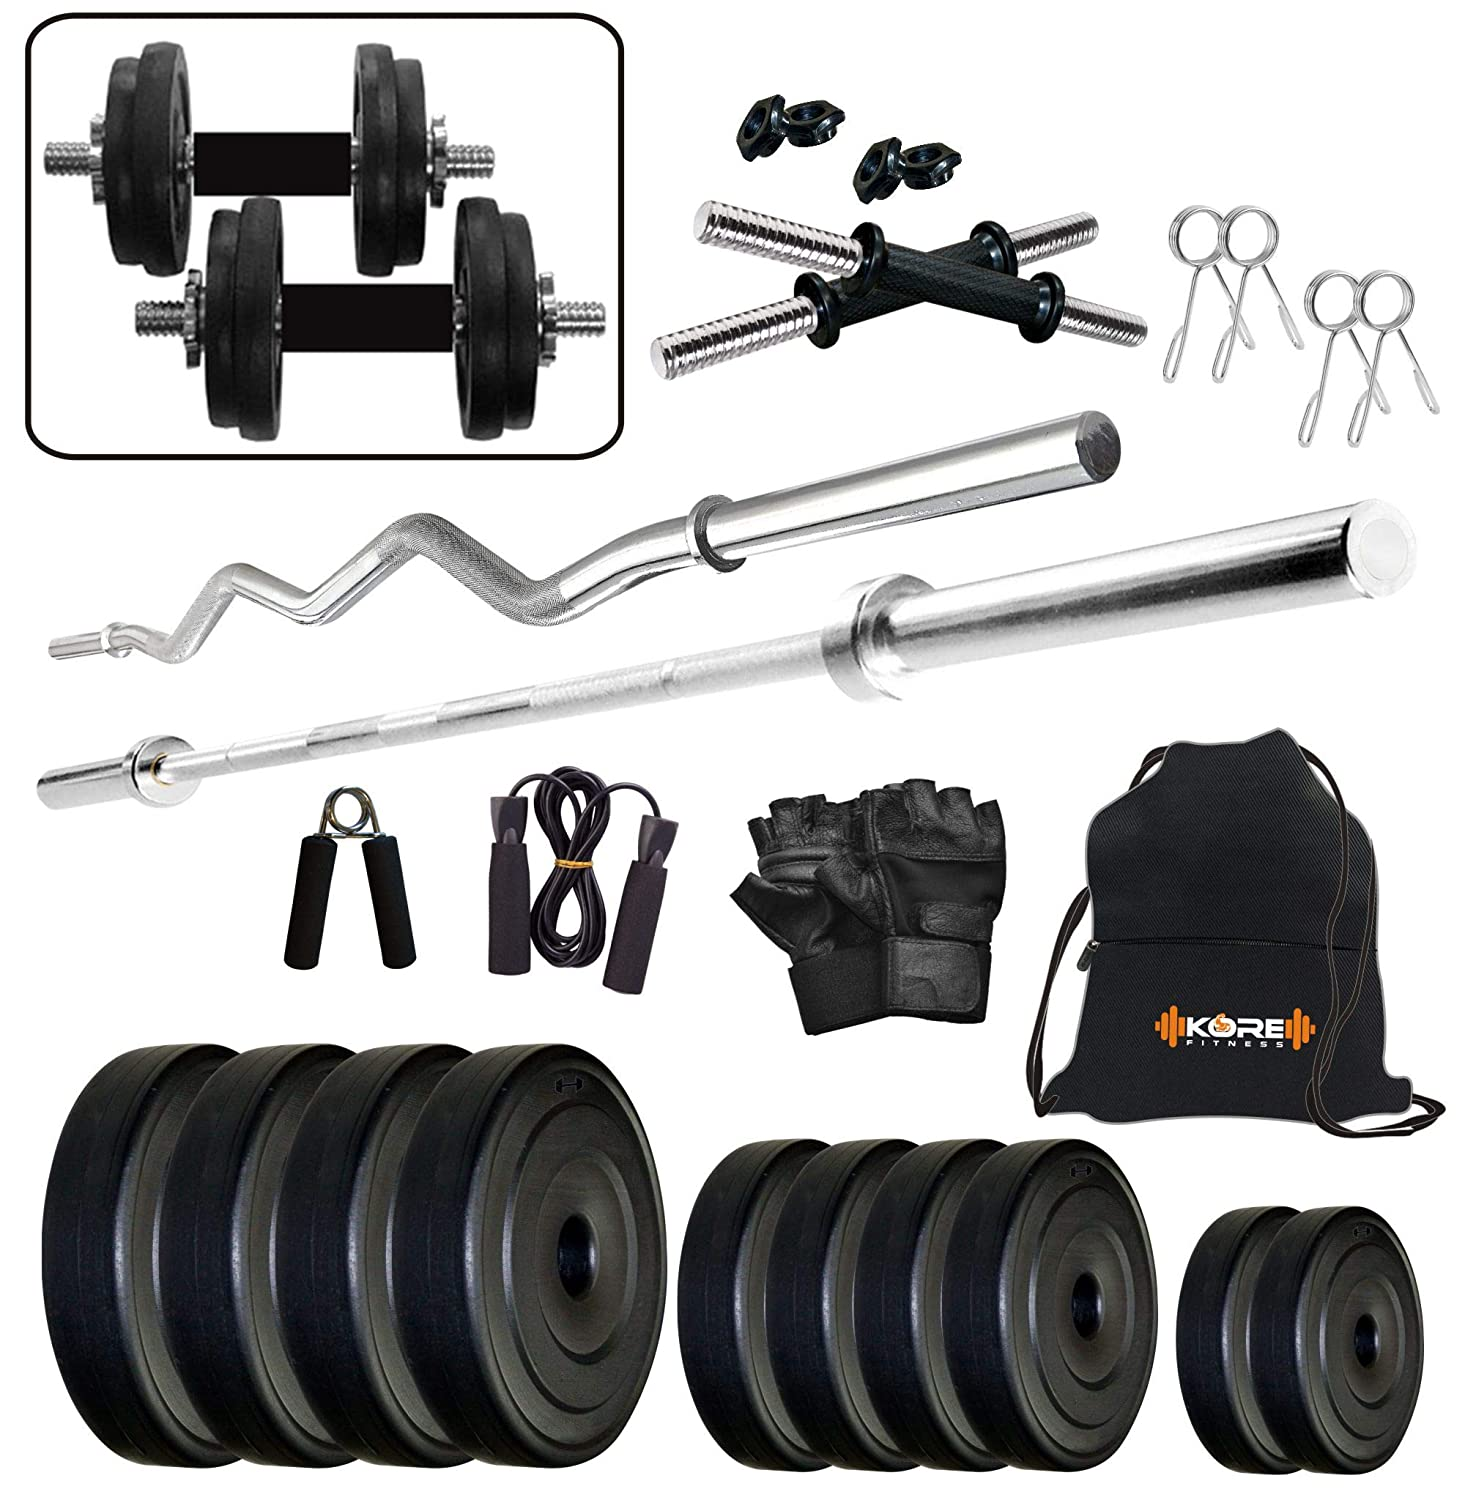 Kore PVC 30 Kg Home Gym Set with One 3 Ft Curl + One 5 Ft